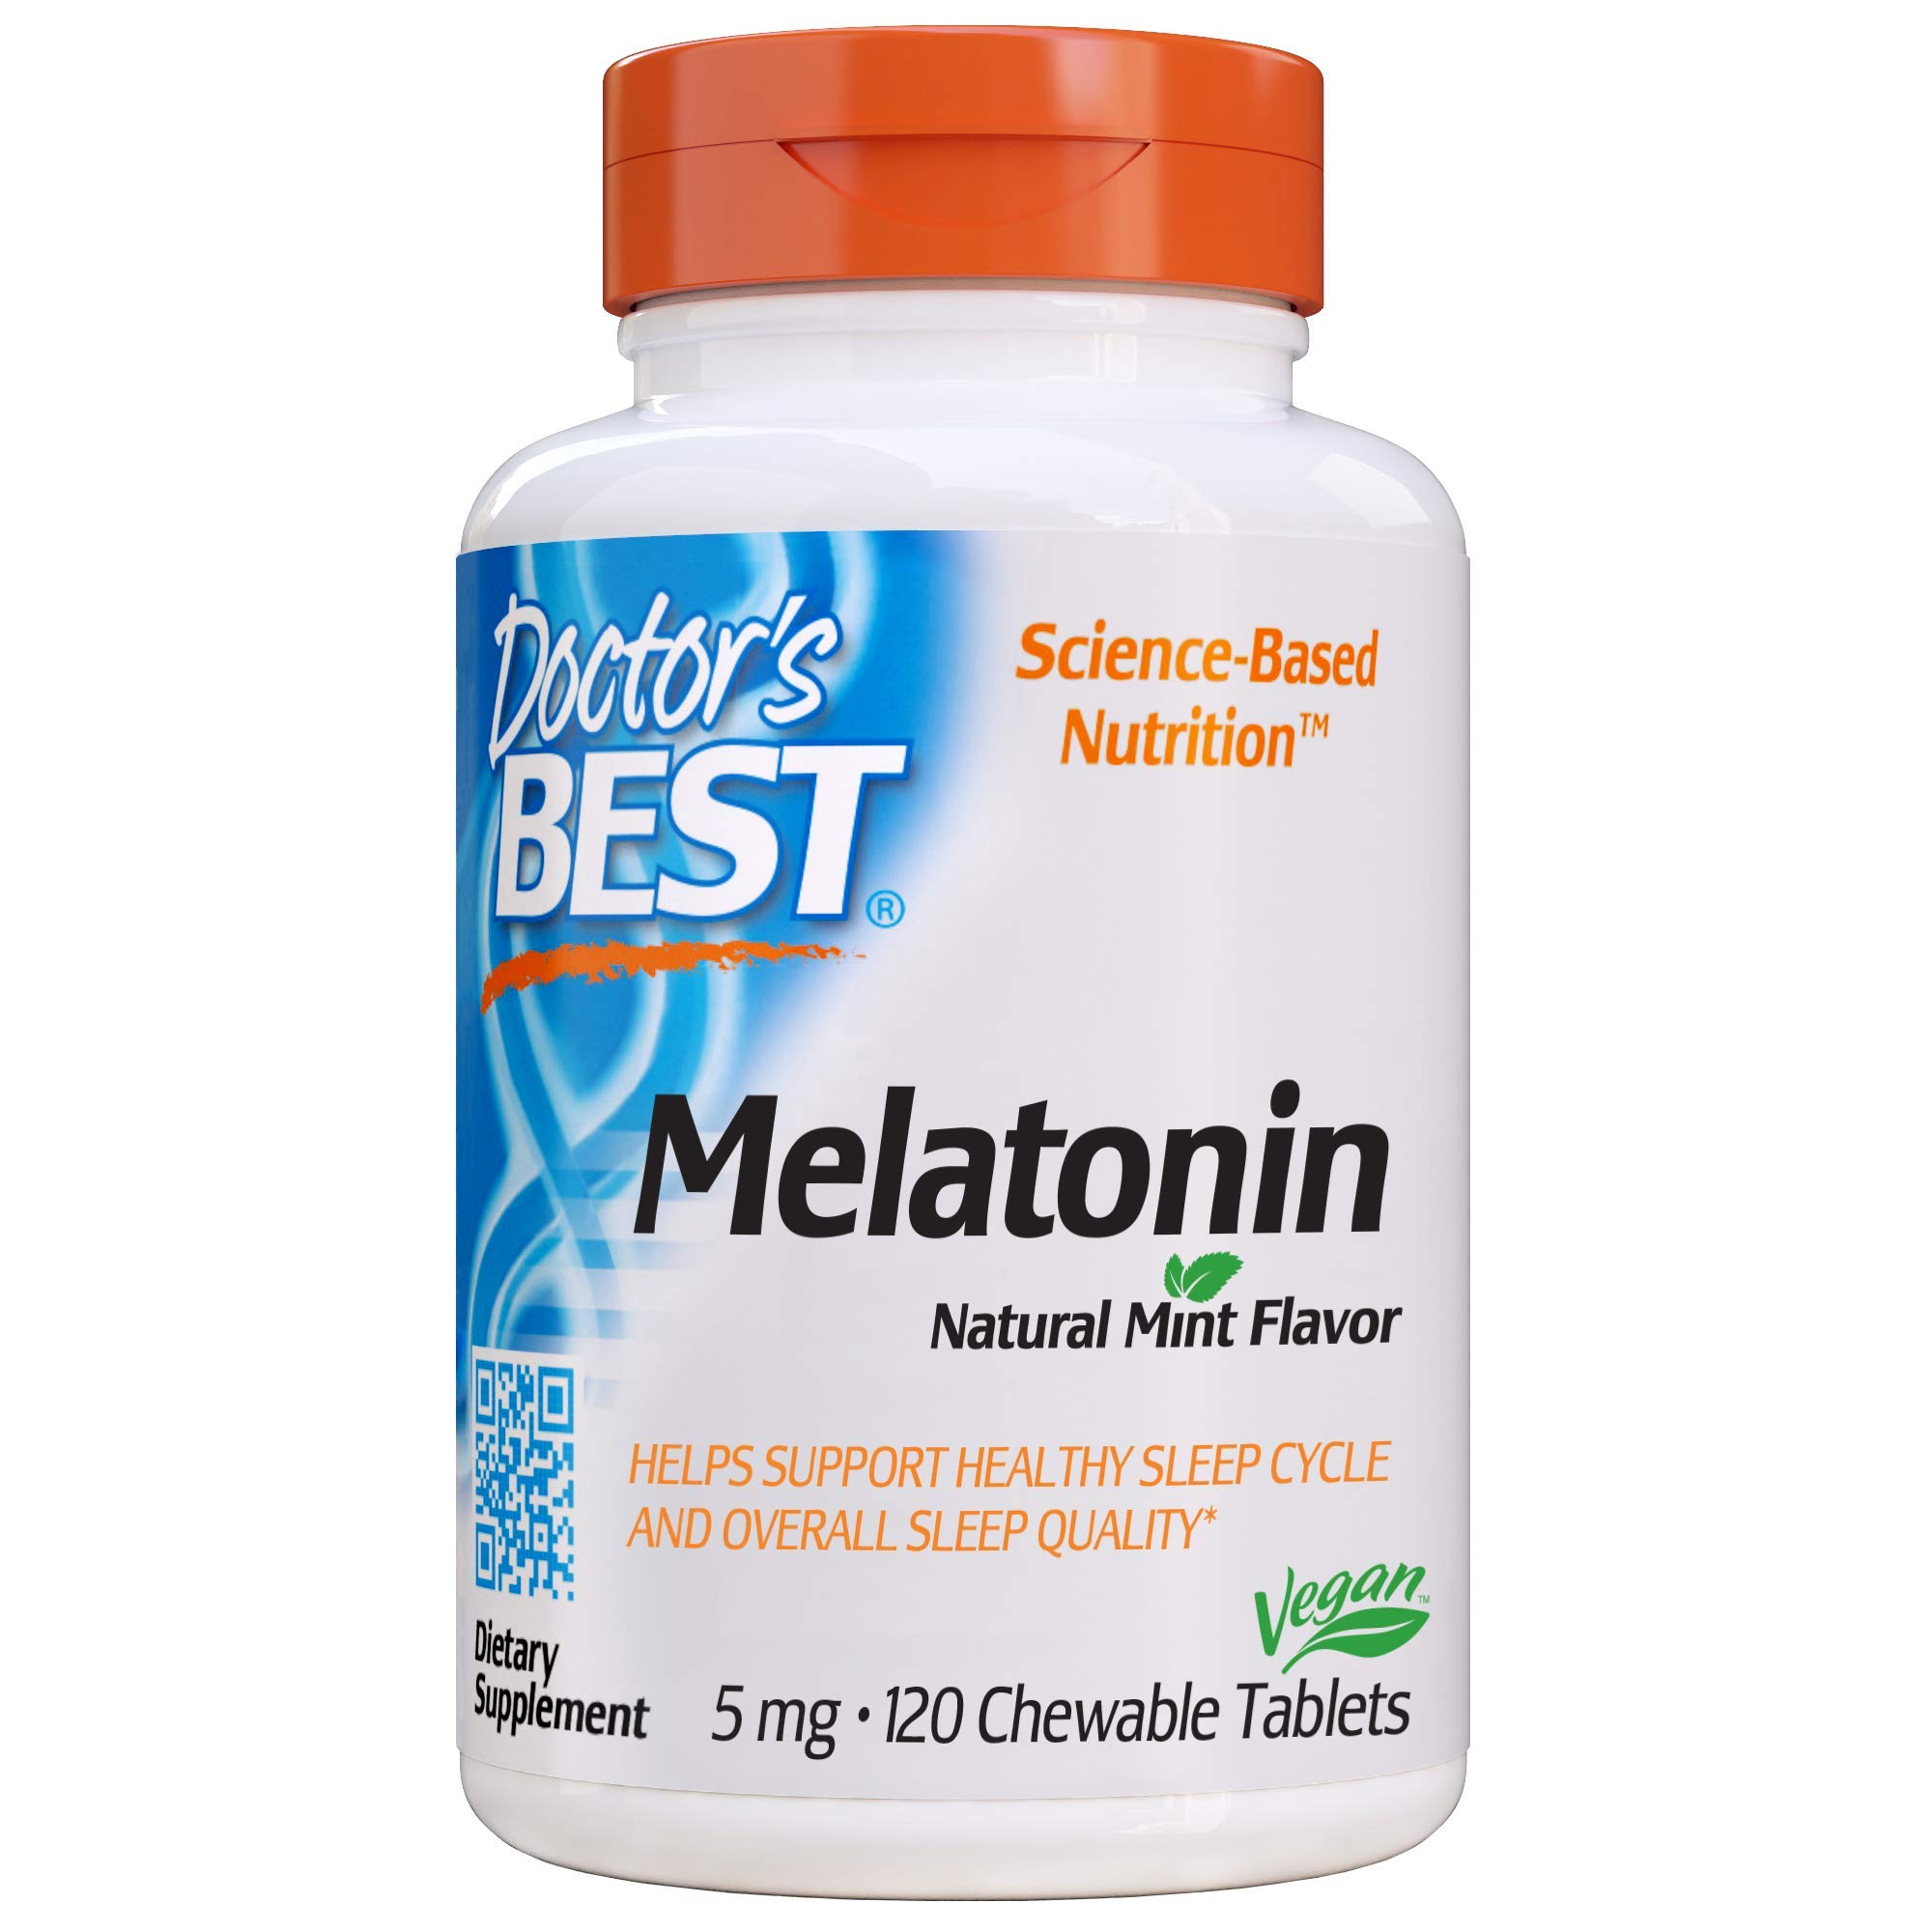 Doctor's Best Melatonin, Helps Promote Healthy Sleep, Jet-Lag, Brain Health & Cognitive Function, Non-GMO, Vegan, Gluten Free, 5 Mg, 120 Chewable Tablets